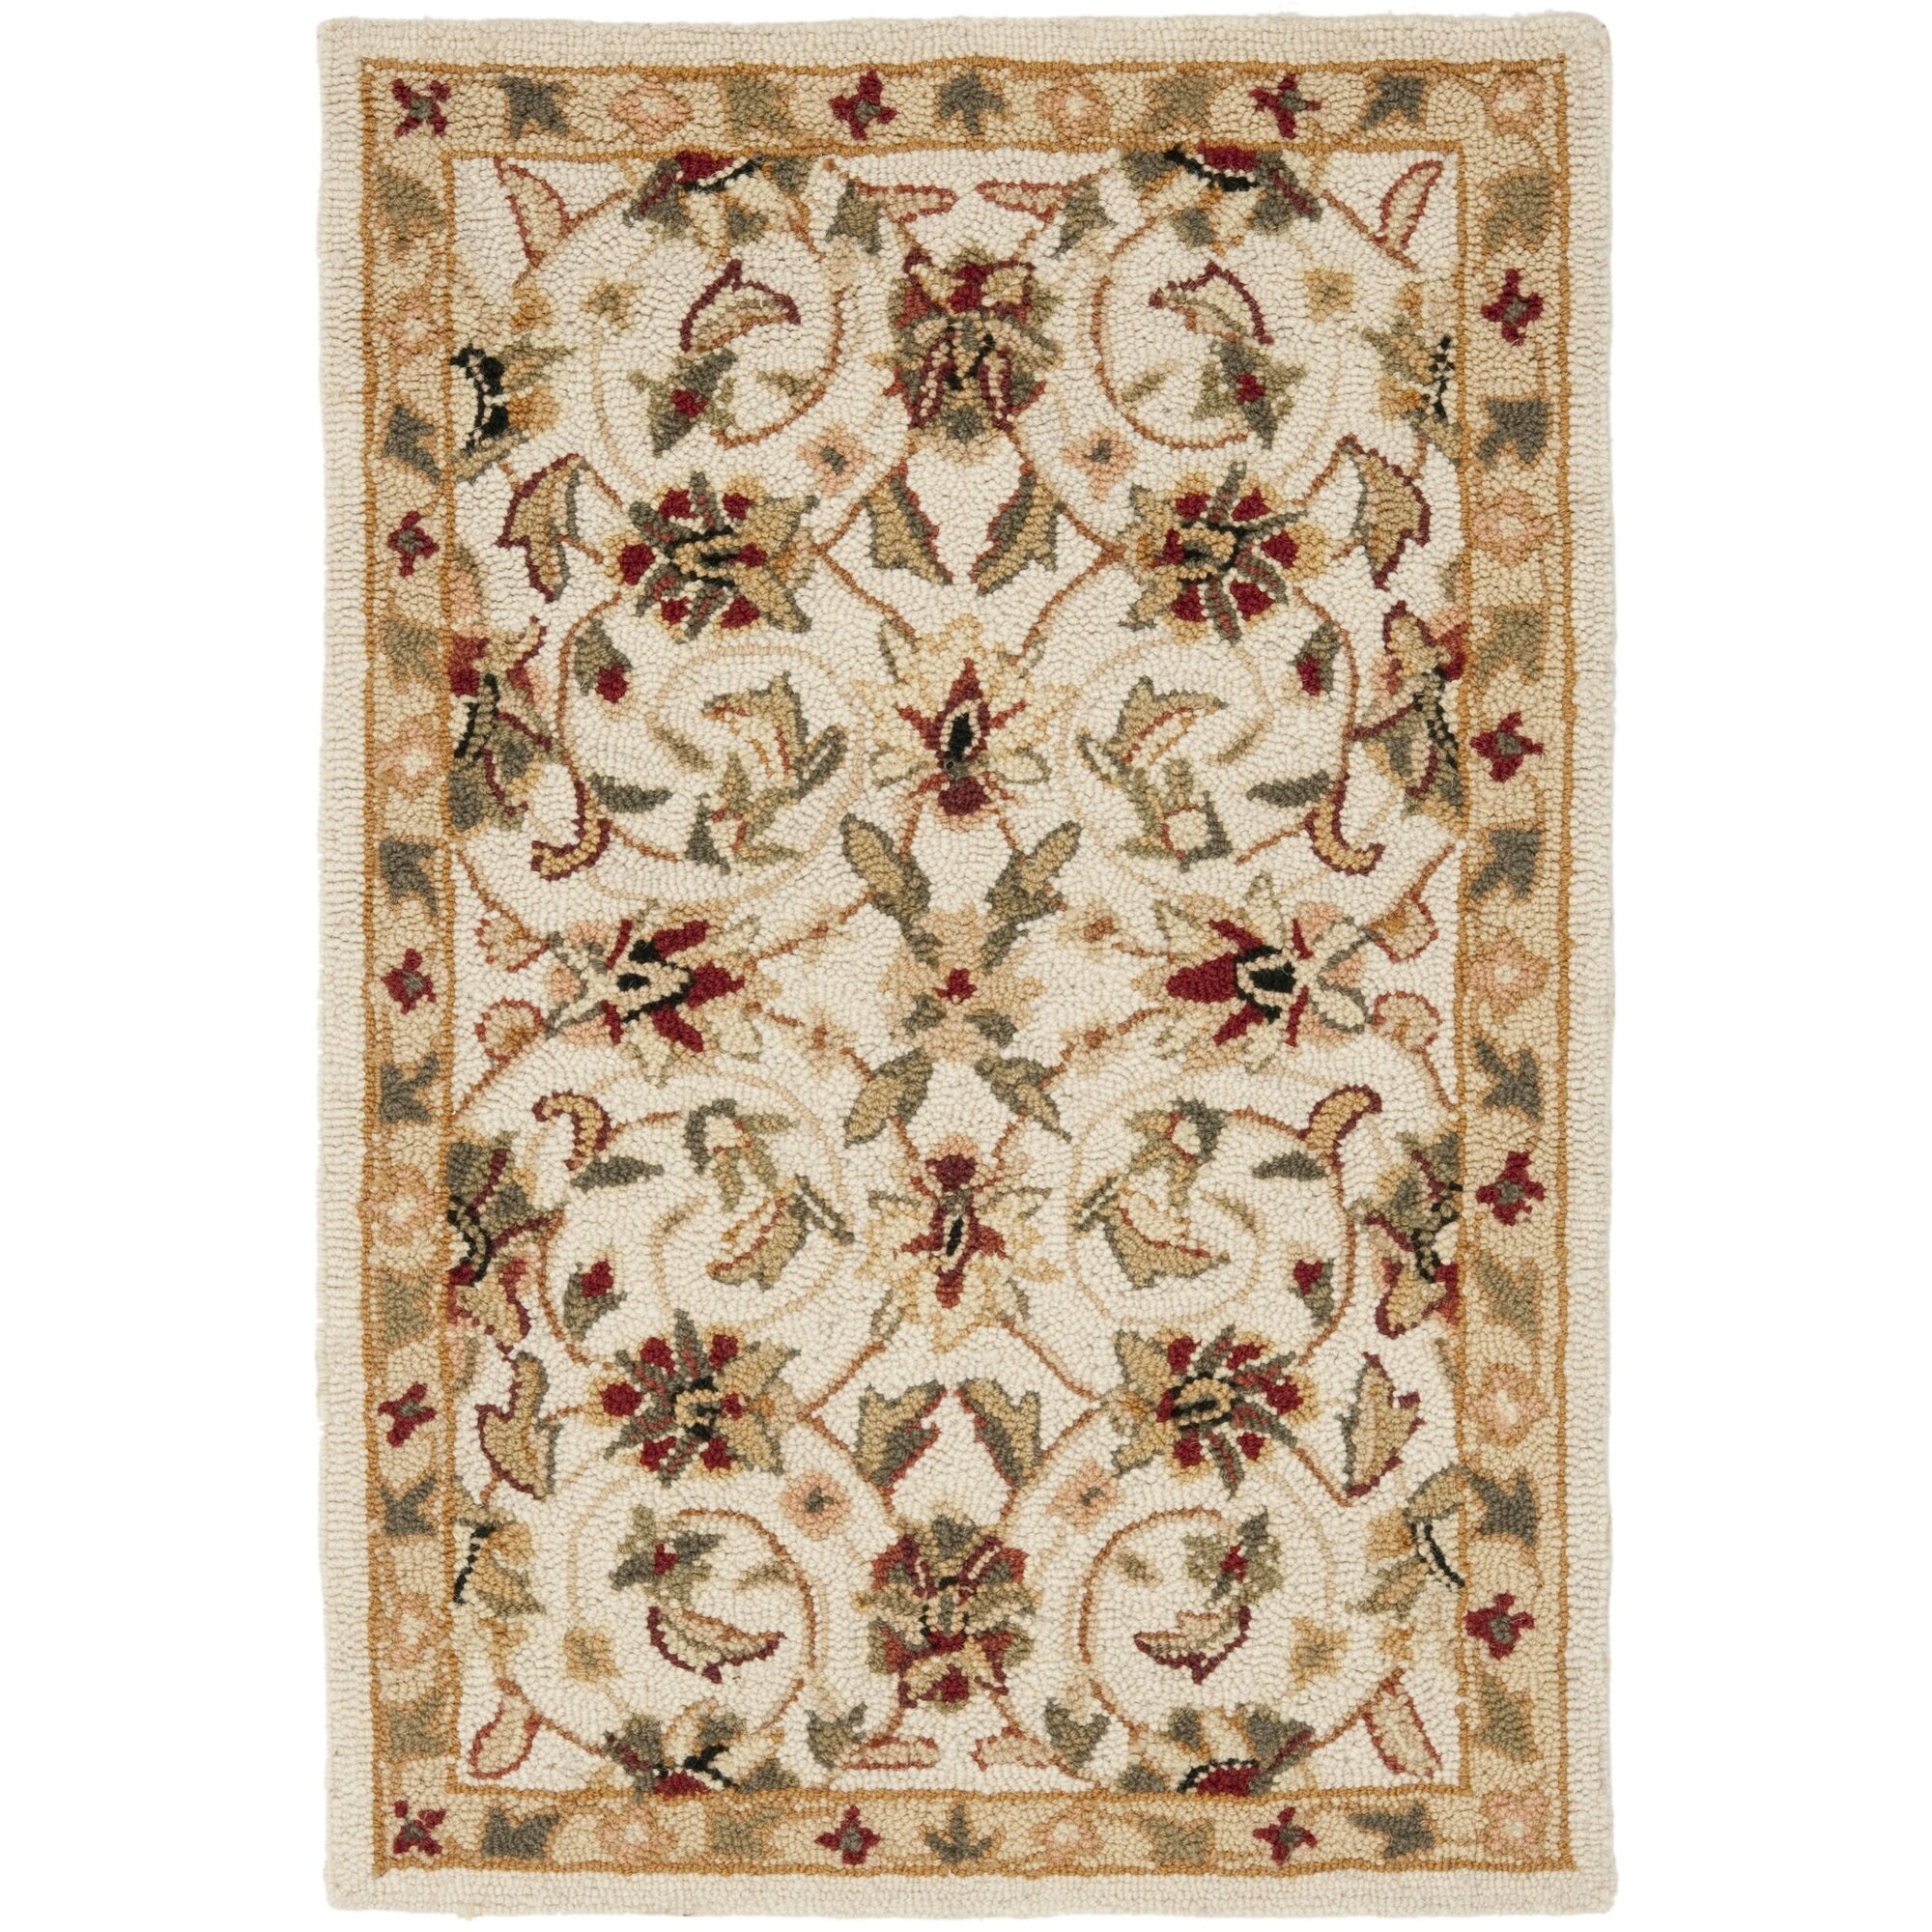 Dog Eating Wool Rug: Safavieh Chelsea Ivory Area Rug & Reviews